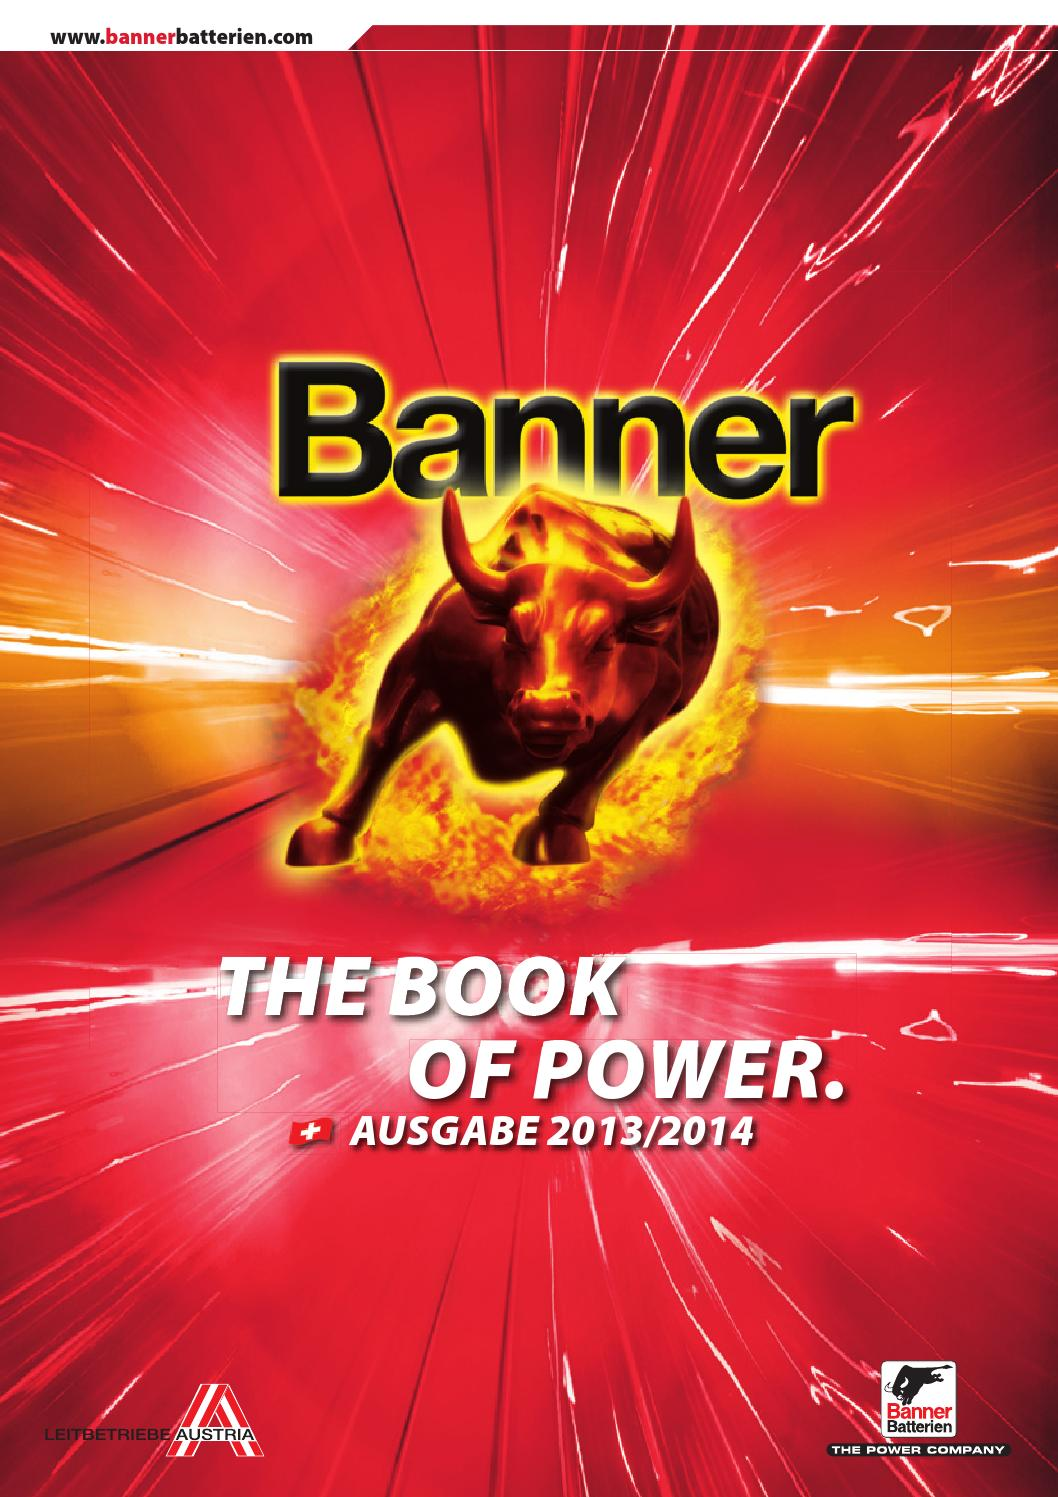 THE BOOK OF POWER CH 50 by Banner Batterien   issuu